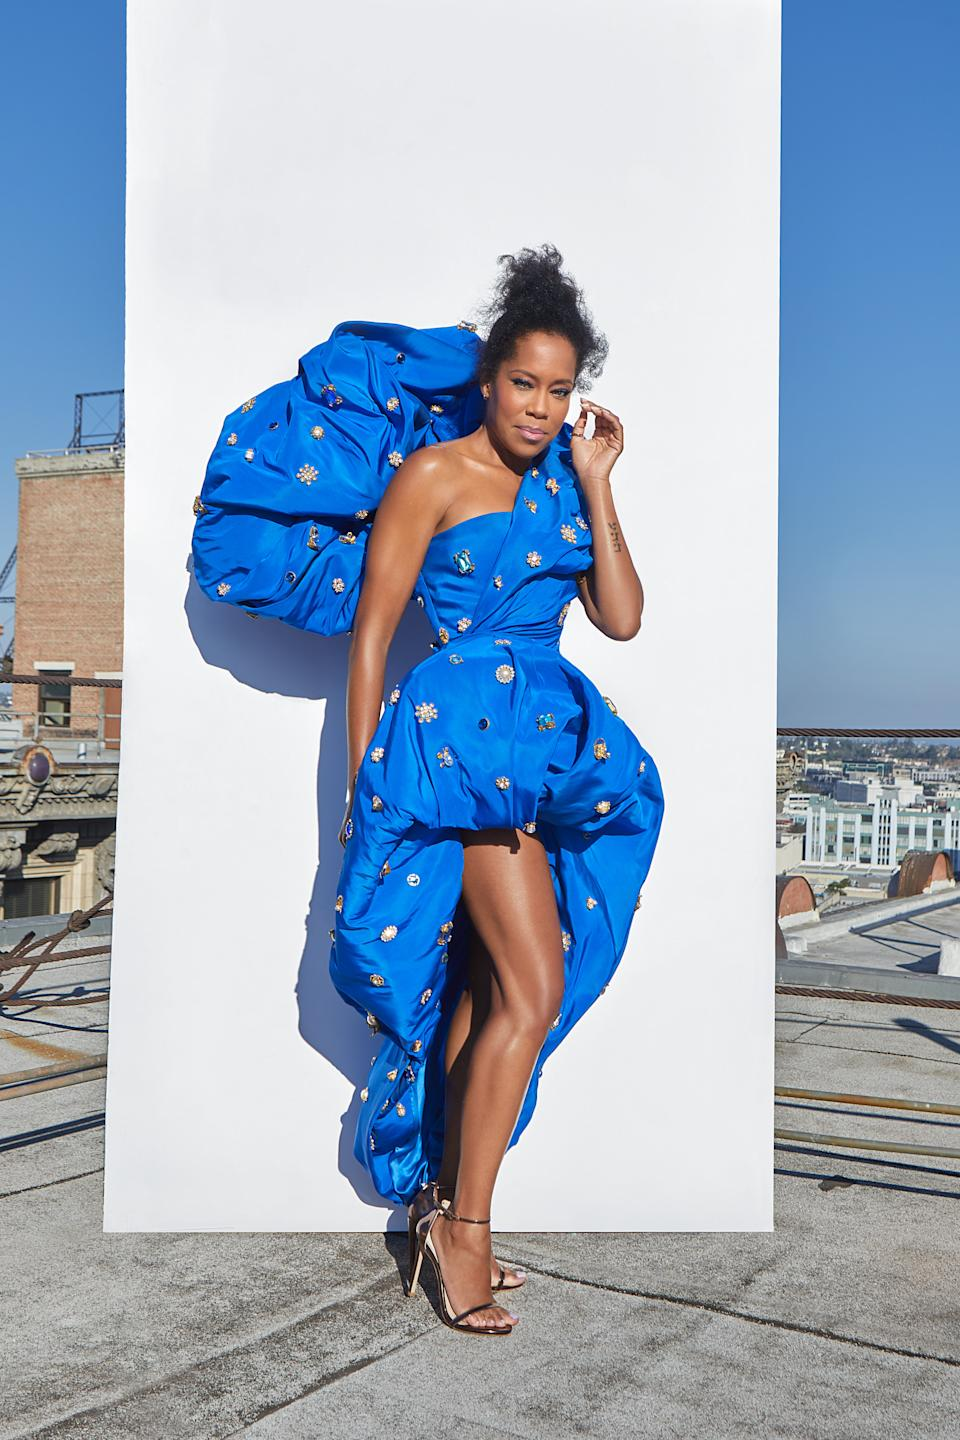 """<h2>Regina King in Schiaparelli<br></h2><br>To ensure that Regina King's electric blue Schiaparelli gown didn't go unseen despite the lack of an Emmys red carpet, photographer <a href=""""https://www.instagram.com/iamjamesanthony/"""" rel=""""nofollow noopener"""" target=""""_blank"""" data-ylk=""""slk:James Anthony"""" class=""""link rapid-noclick-resp"""">James Anthony</a> held a shoot with the <em>Watchmen</em> star prior to the awards show. And boy, are we glad he did."""